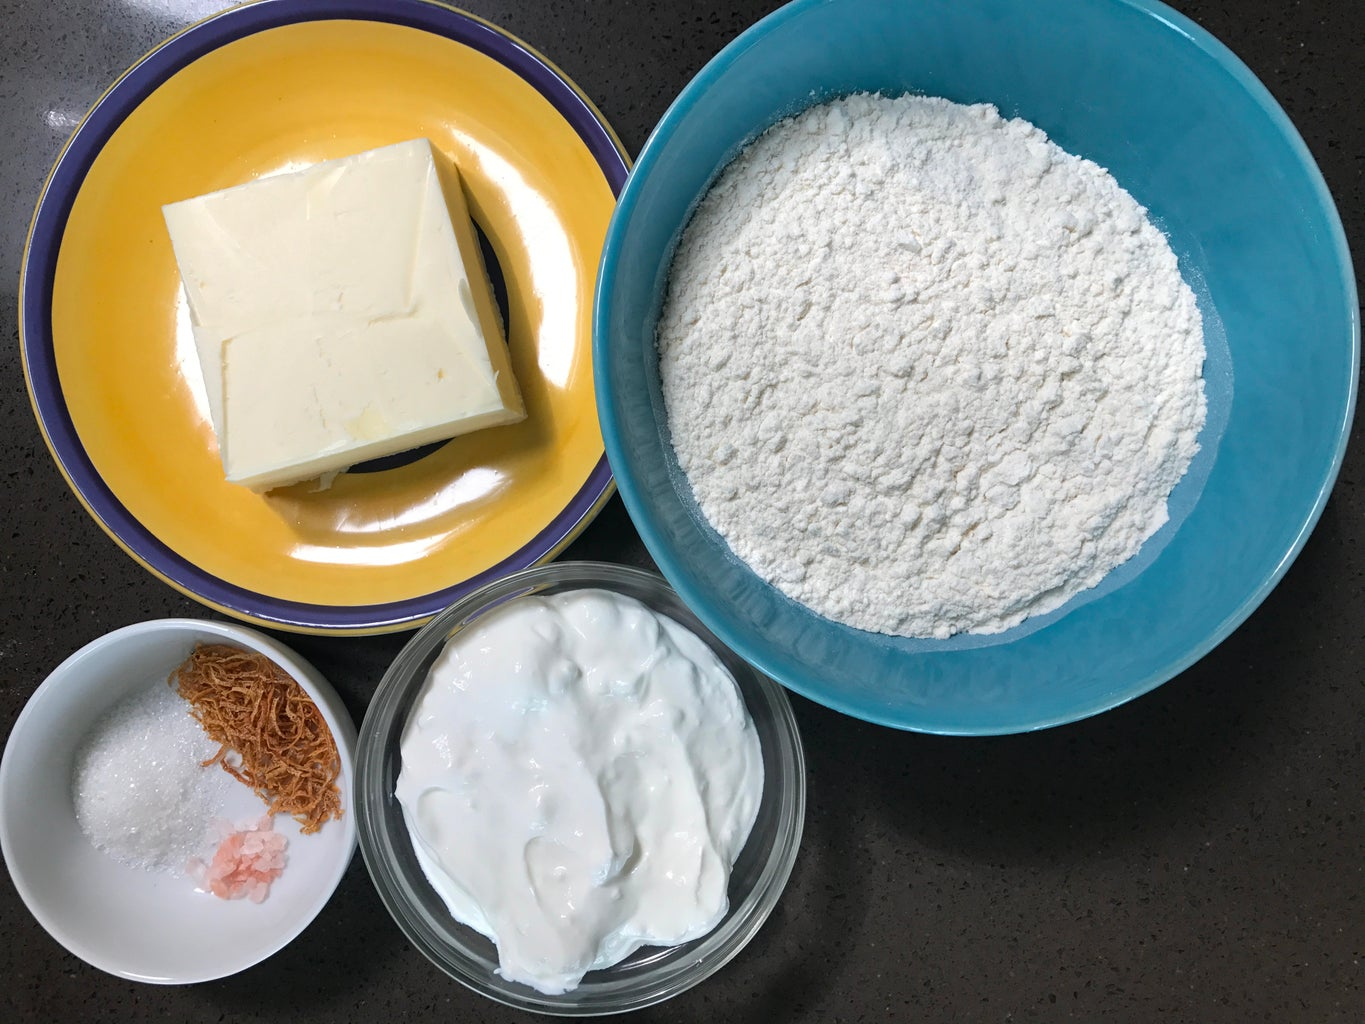 Ingredients of the Crust